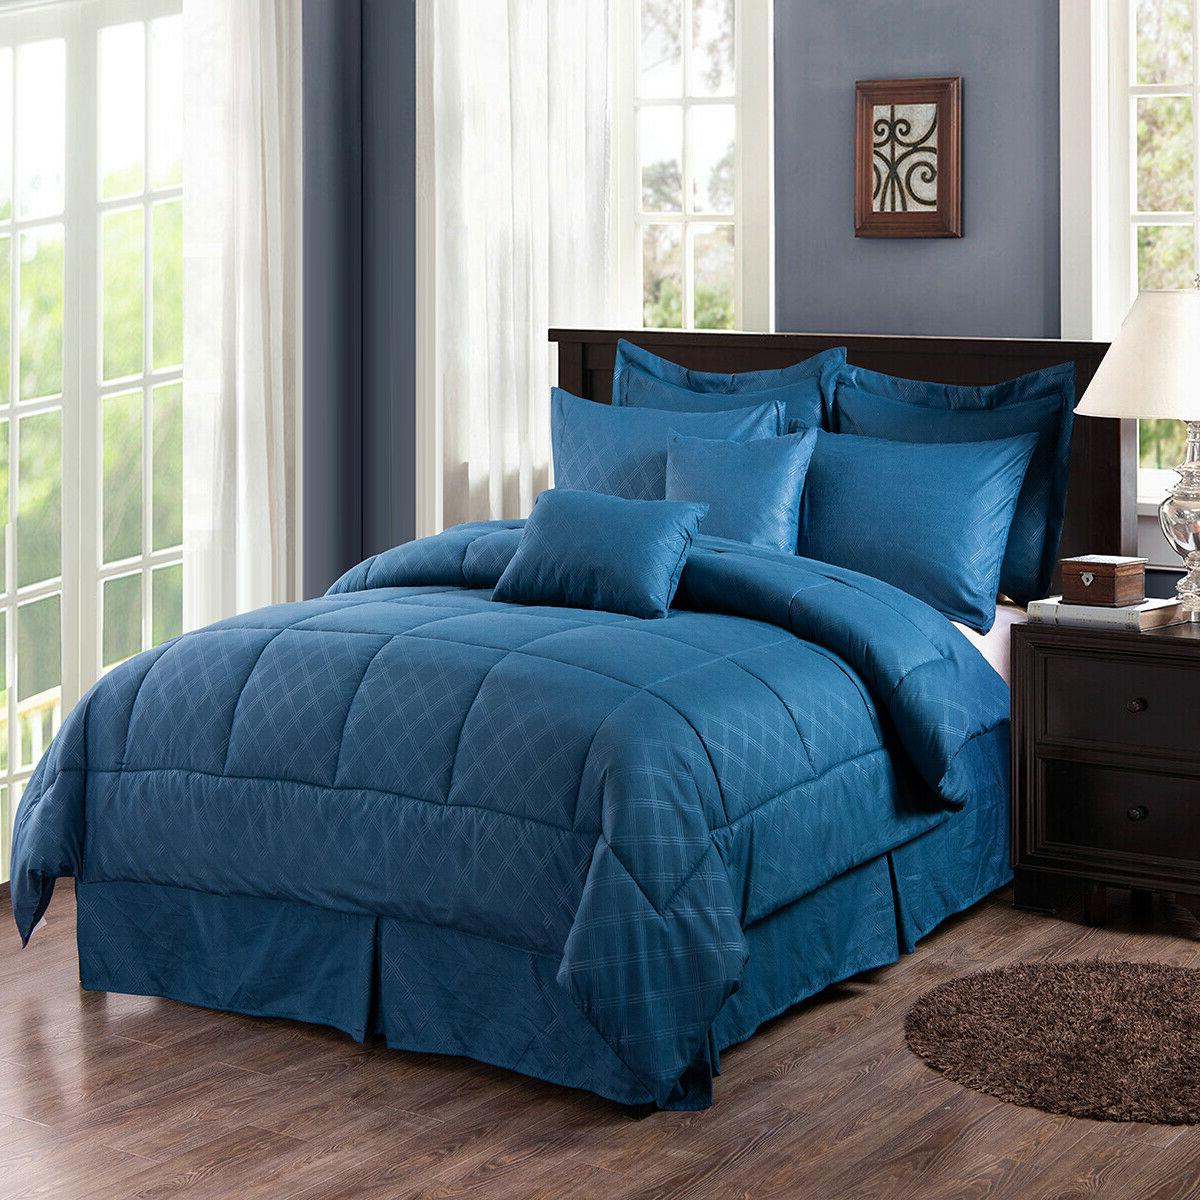 10 A Plaid Embossed Comforter Sheet